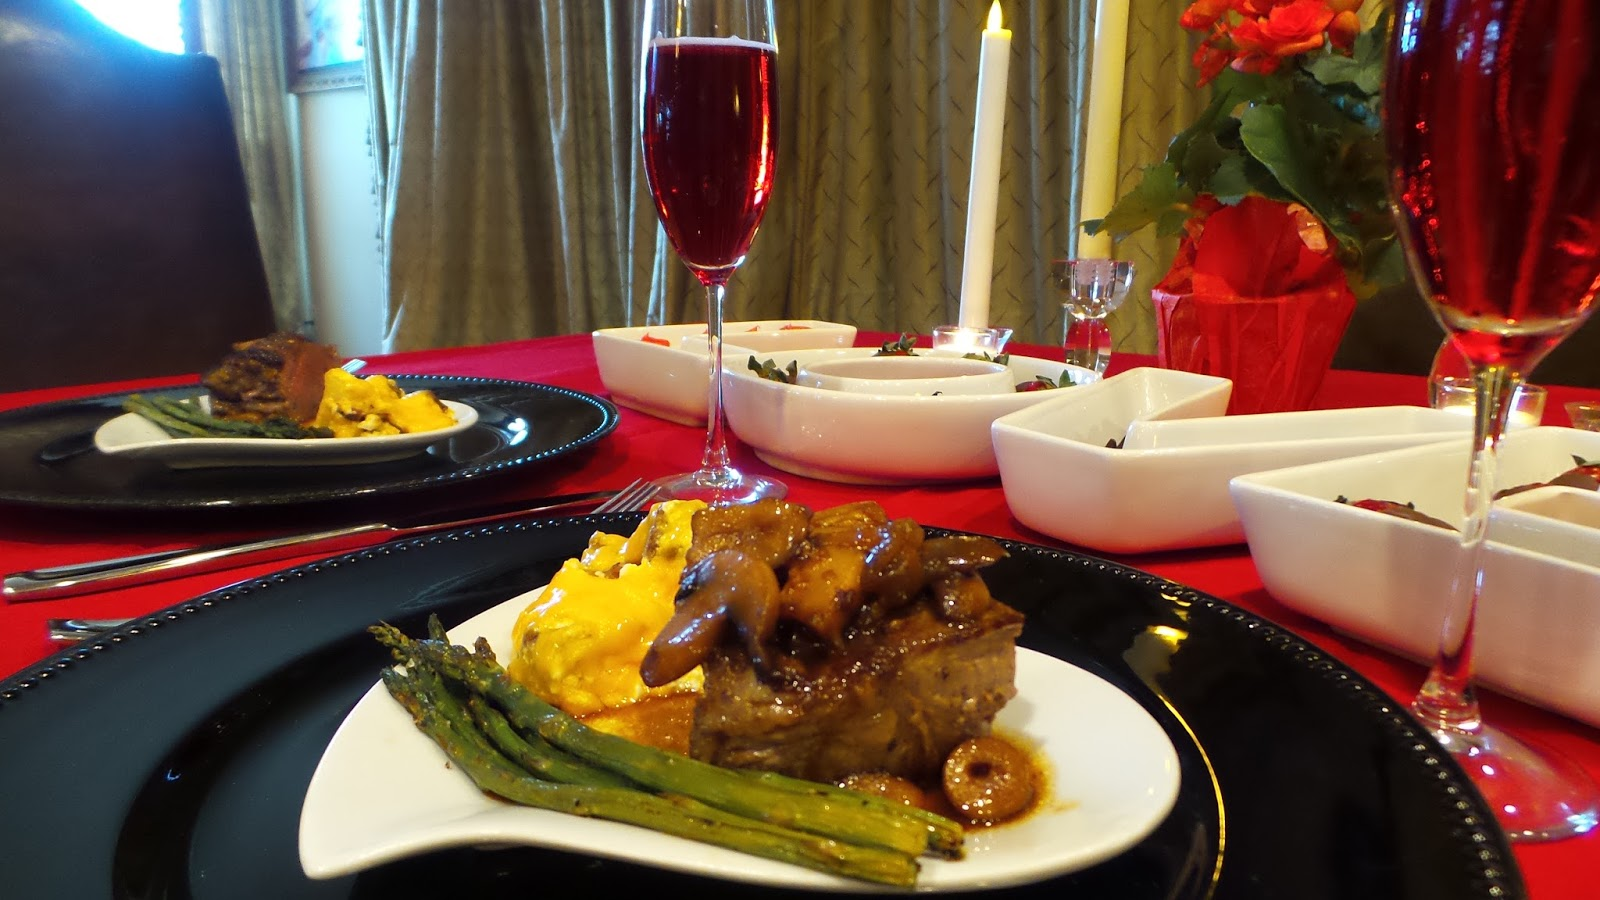 romantic meal for two at home my web value